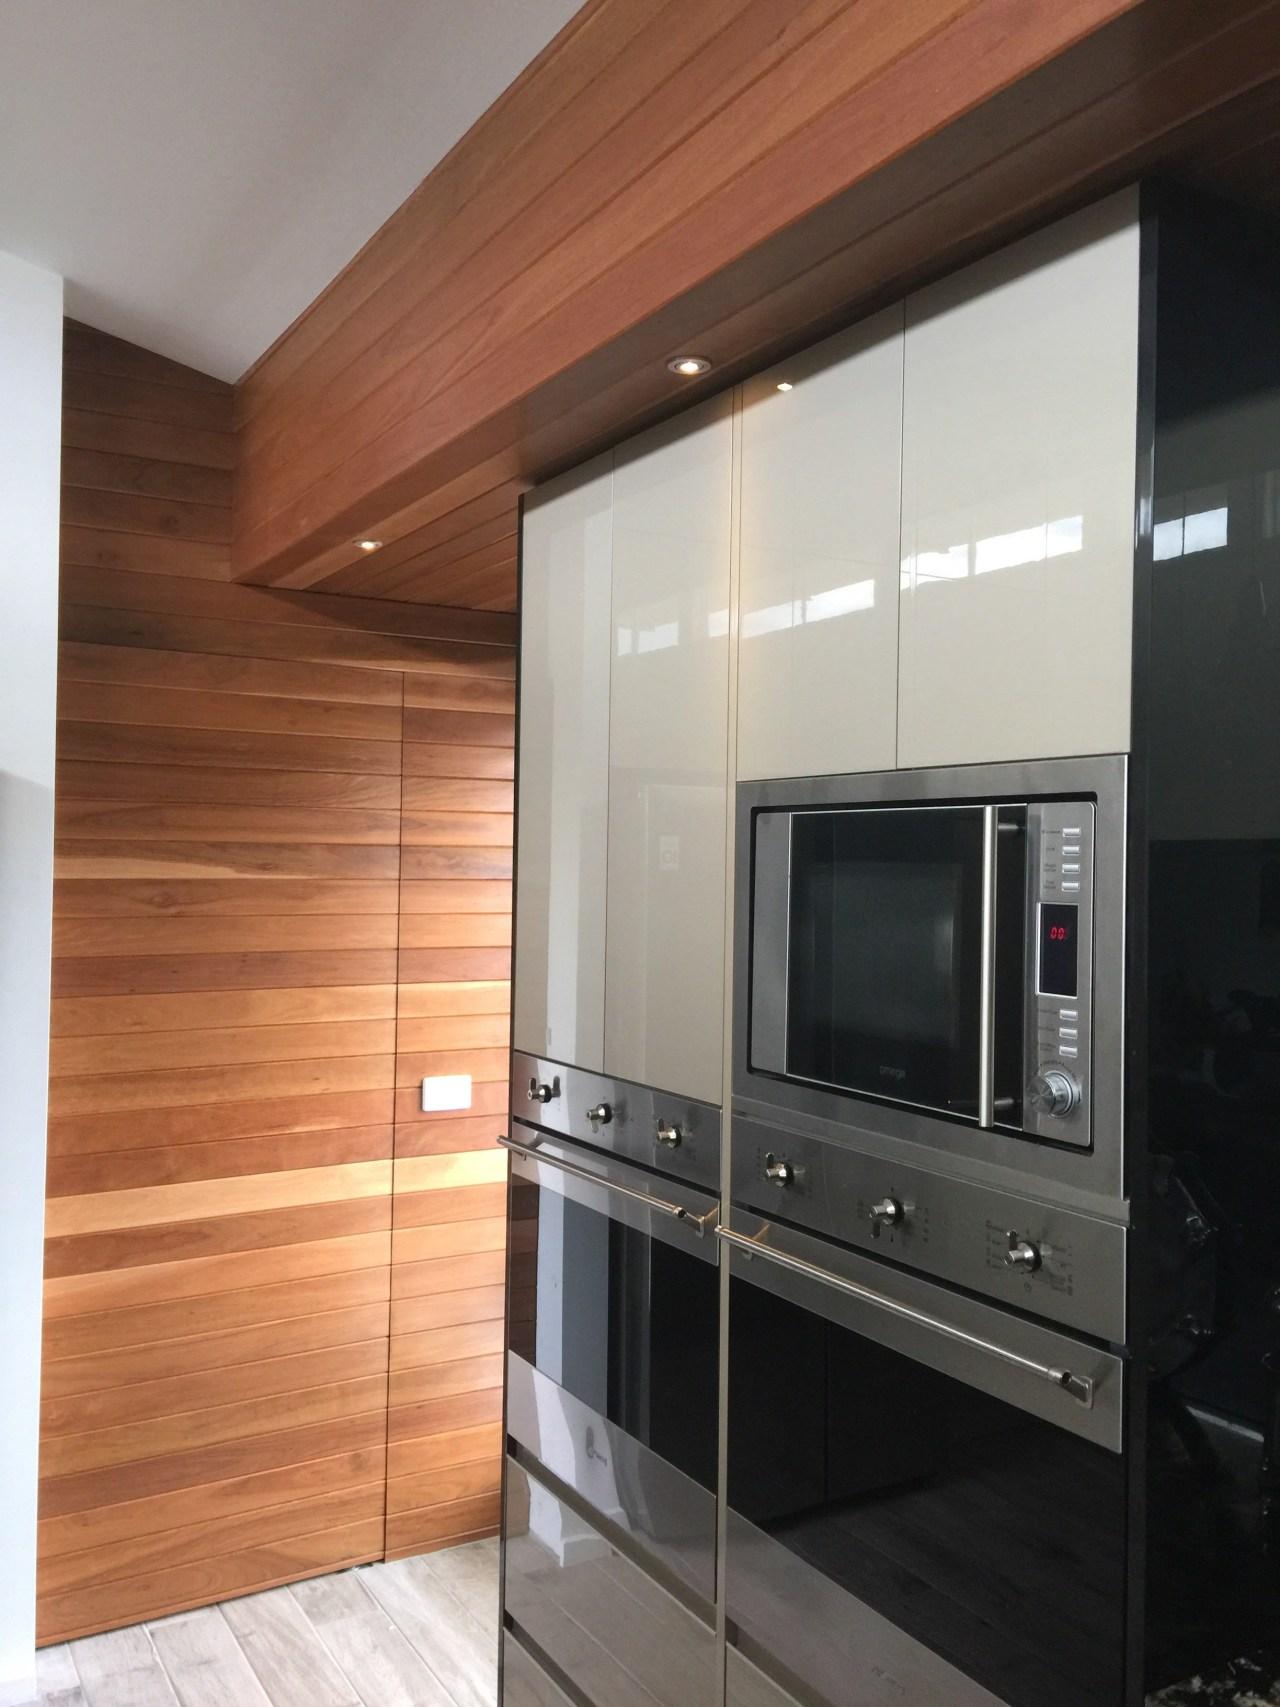 Centre Stage cabinetry, countertop, floor, flooring, home appliance, interior design, kitchen, major appliance, wood flooring, gray, brown